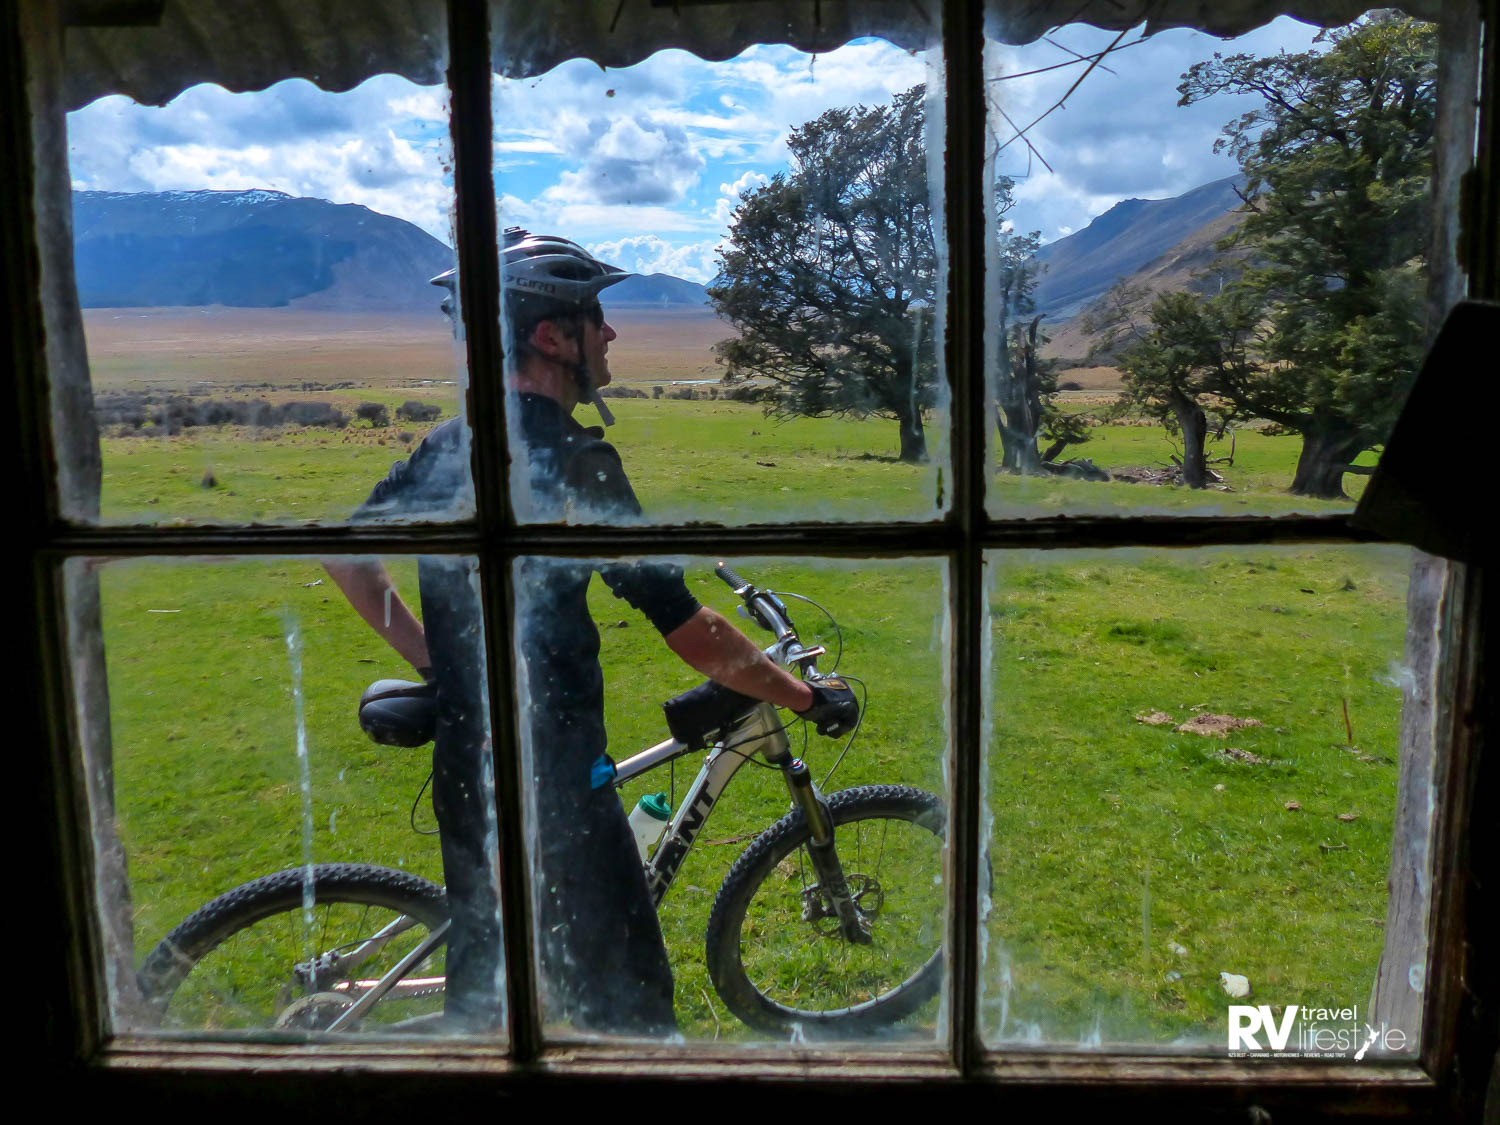 The six-pane window in the hut looks right up the Von